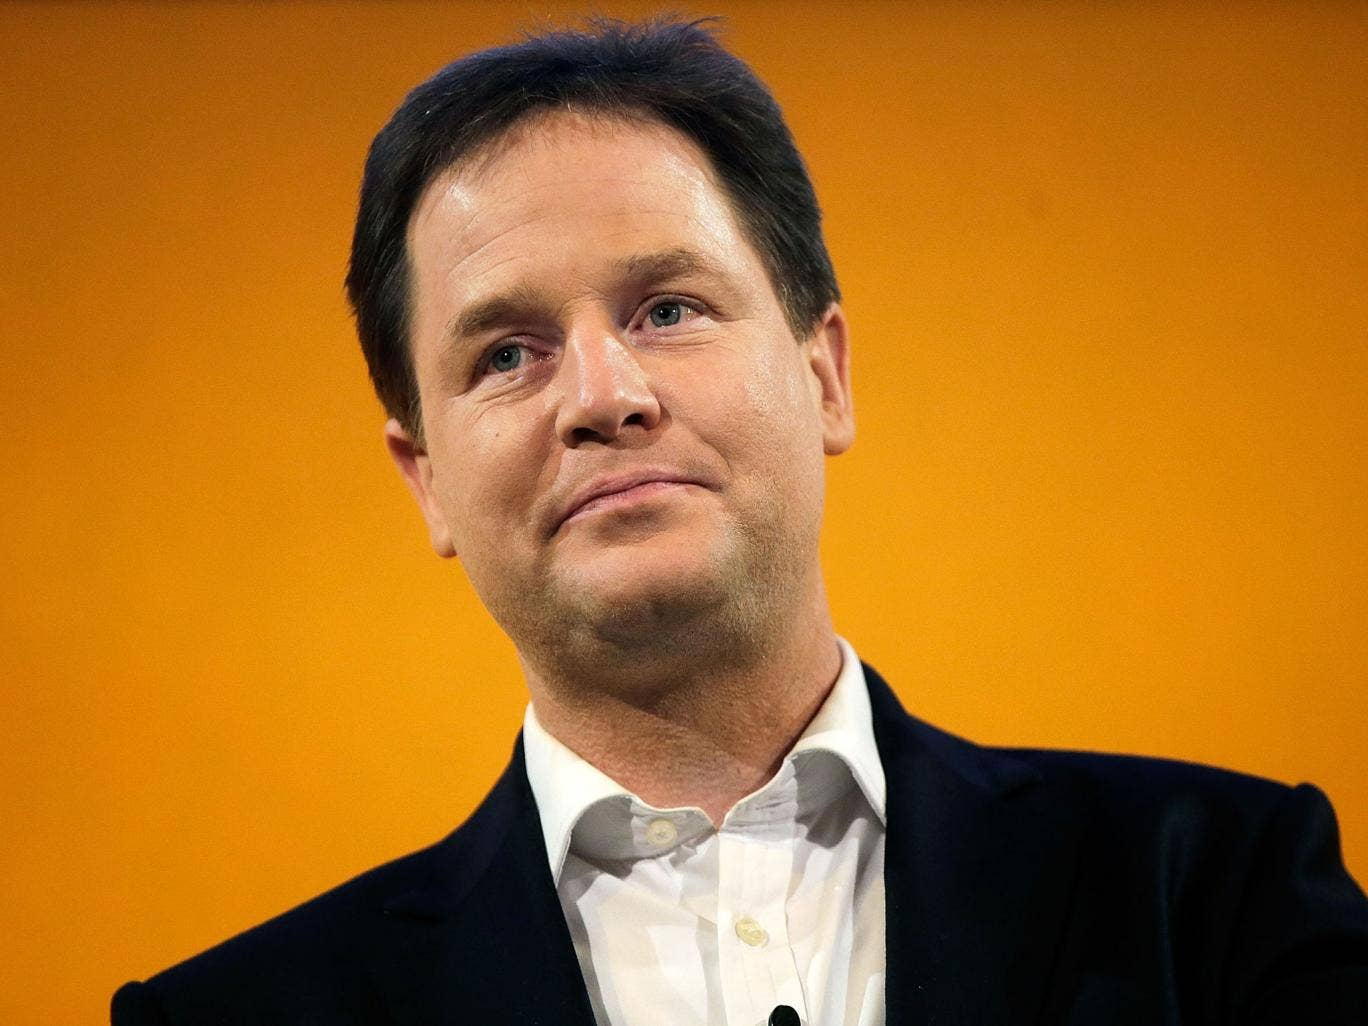 Deputy Prime Minister Nick Clegg today denied that newspapers were excluded from crucial talks on the creation of a powerful new press regulator backed by legislation.